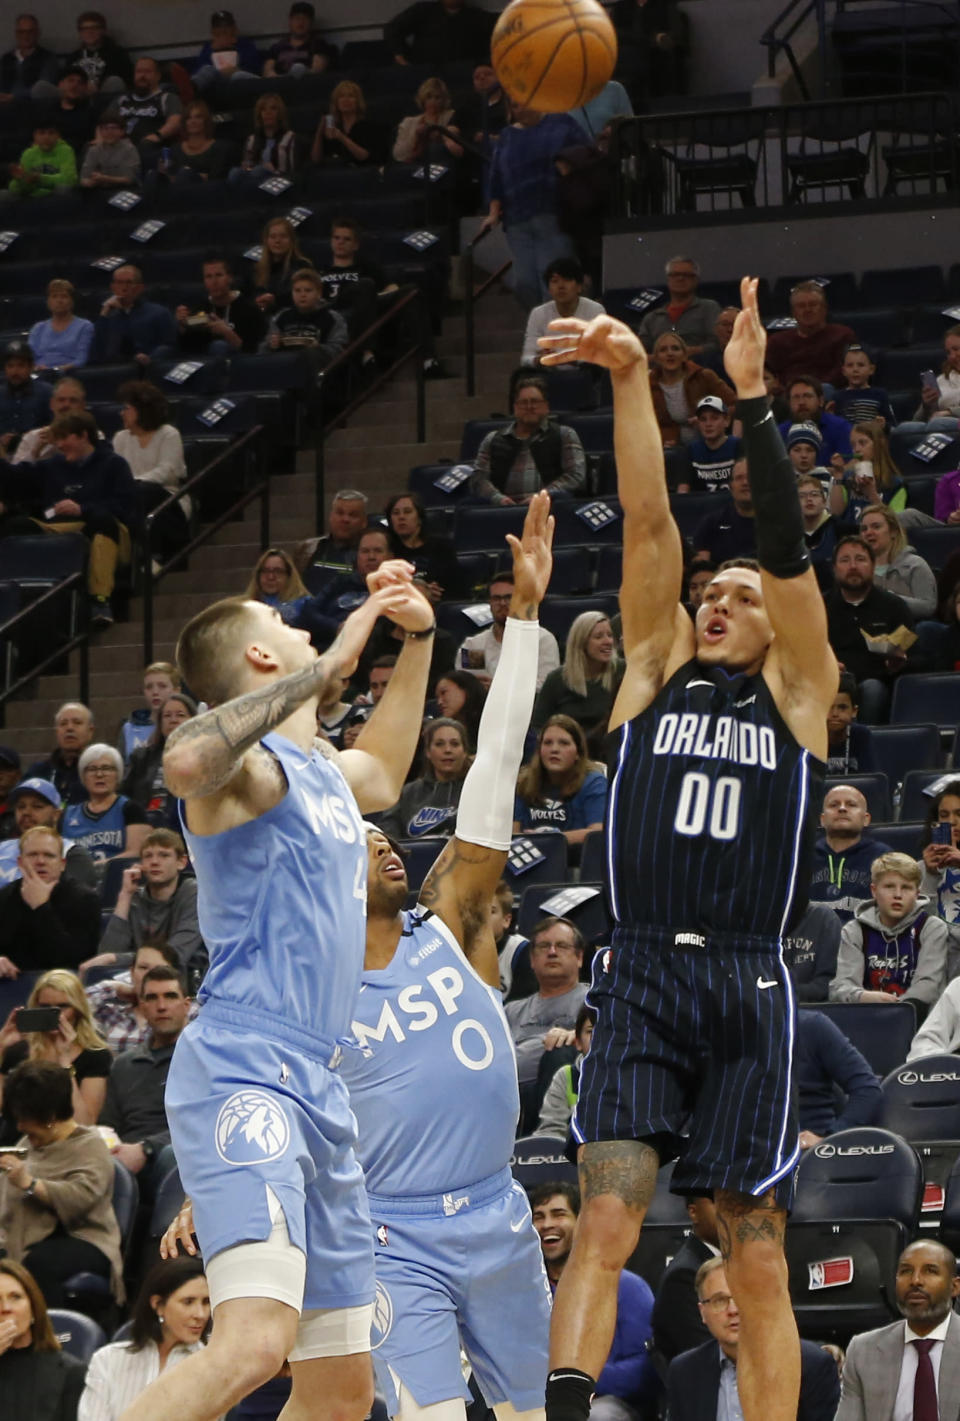 Orlando Magic's Aaron Gordon, right, shoots past Minnesota Timberwolves' Juancho Hernangomez, left, and D'Angelo Russell in the first half of an NBA basketball game, Friday, March 6, 2020, in Minneapolis. (AP Photo/Jim Mone)